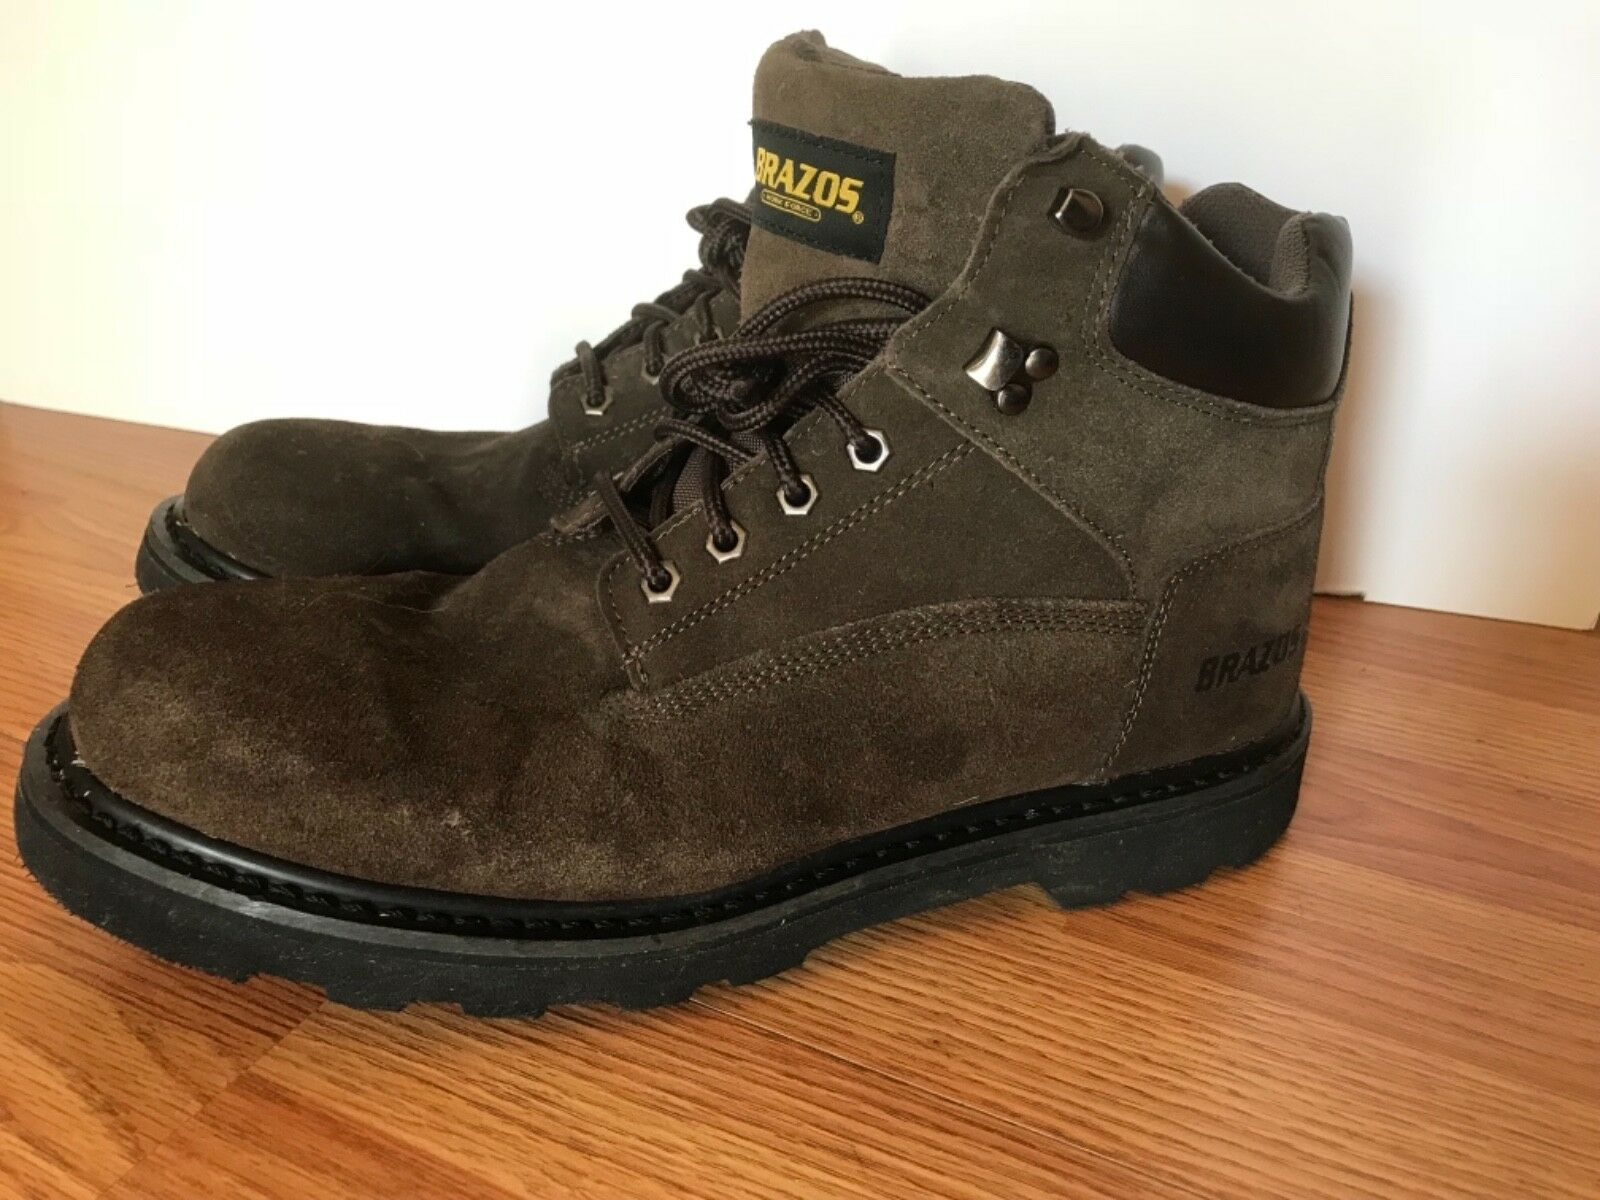 Men's Brazos Work Force Steel Toe Brown Lace Up Leather Work Boot Sz.13 D